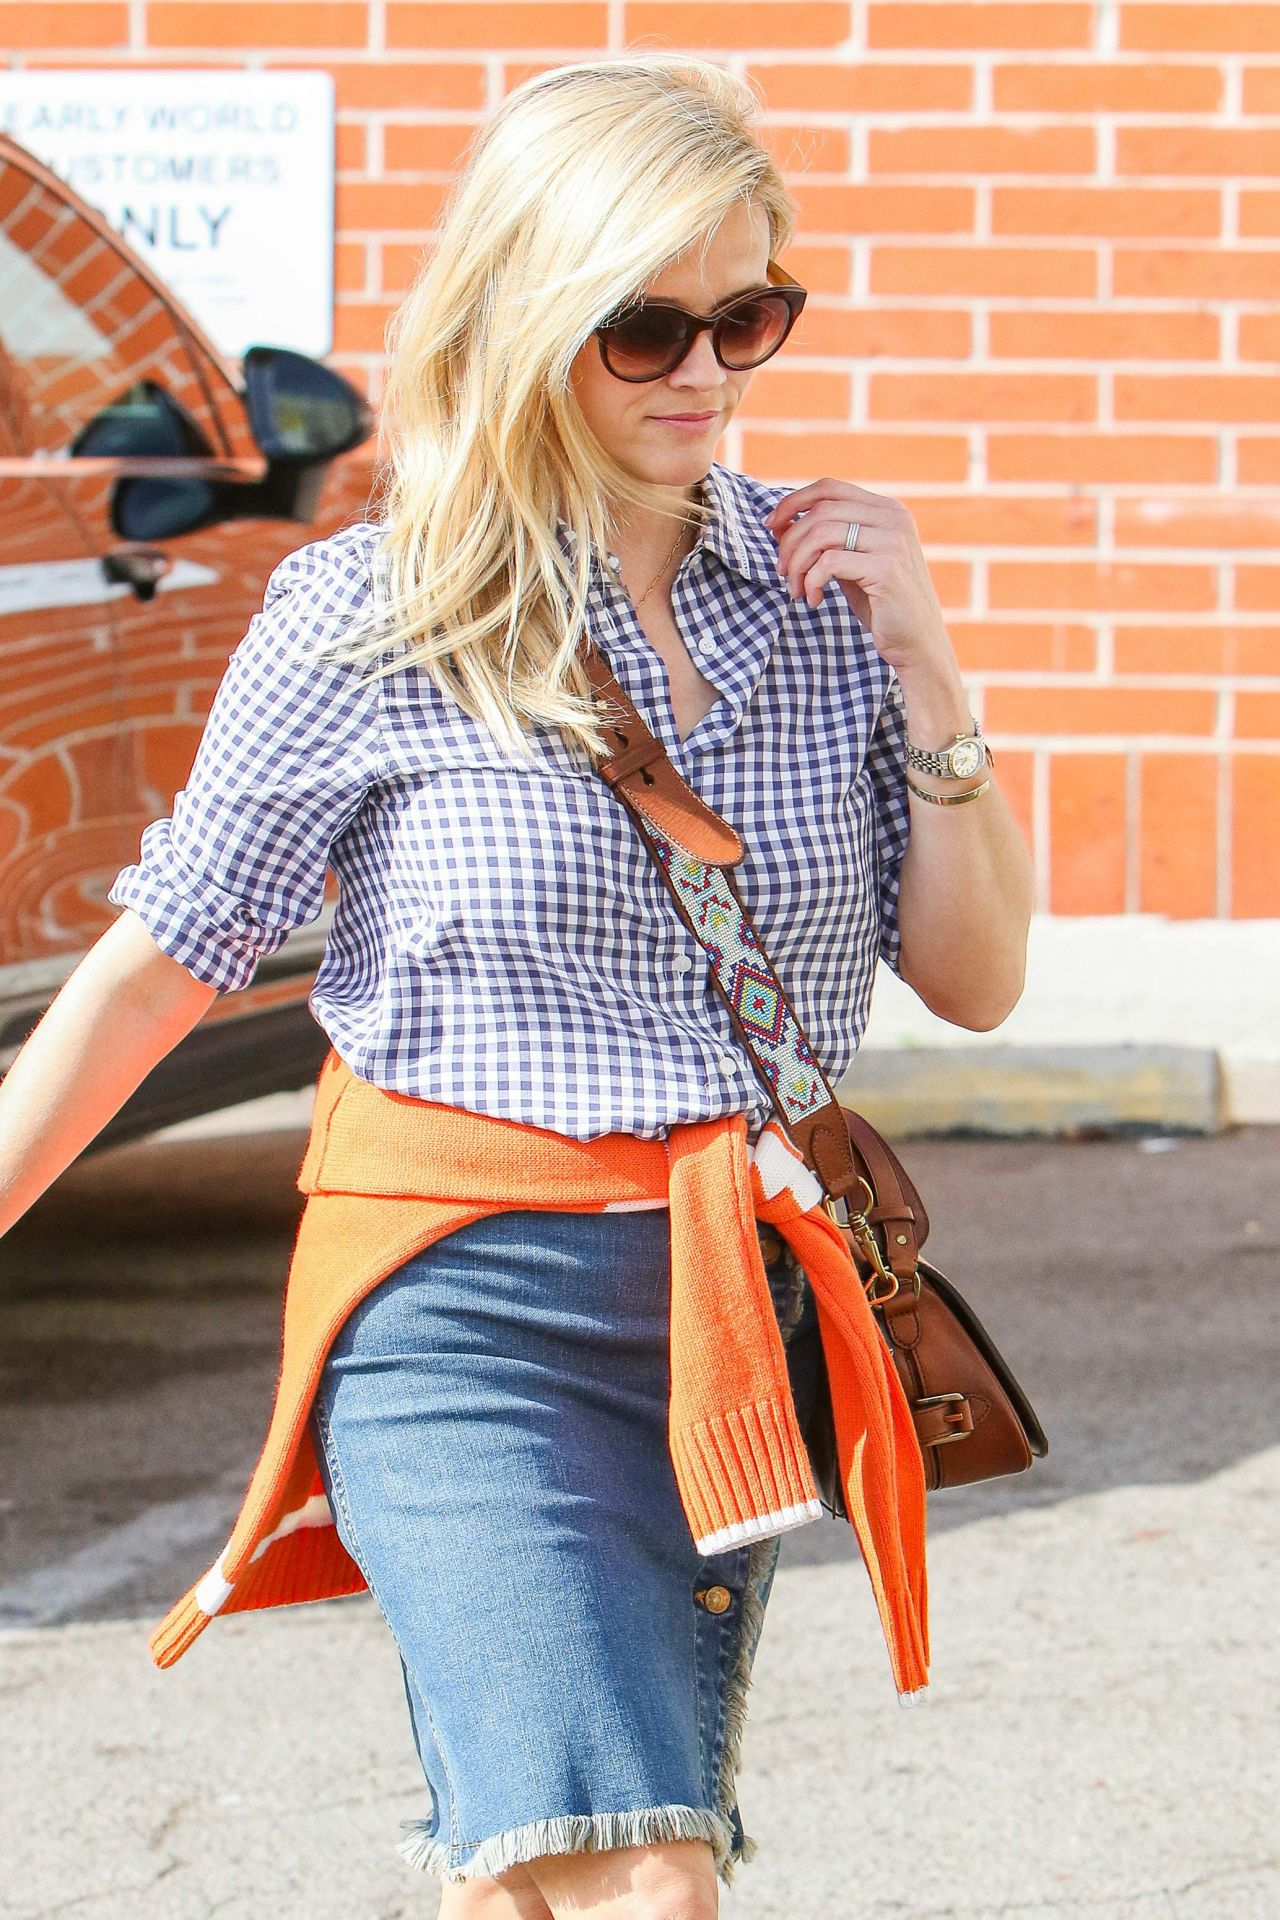 Reese Witherspoon Casual Style Los Angeles 10 24 2016